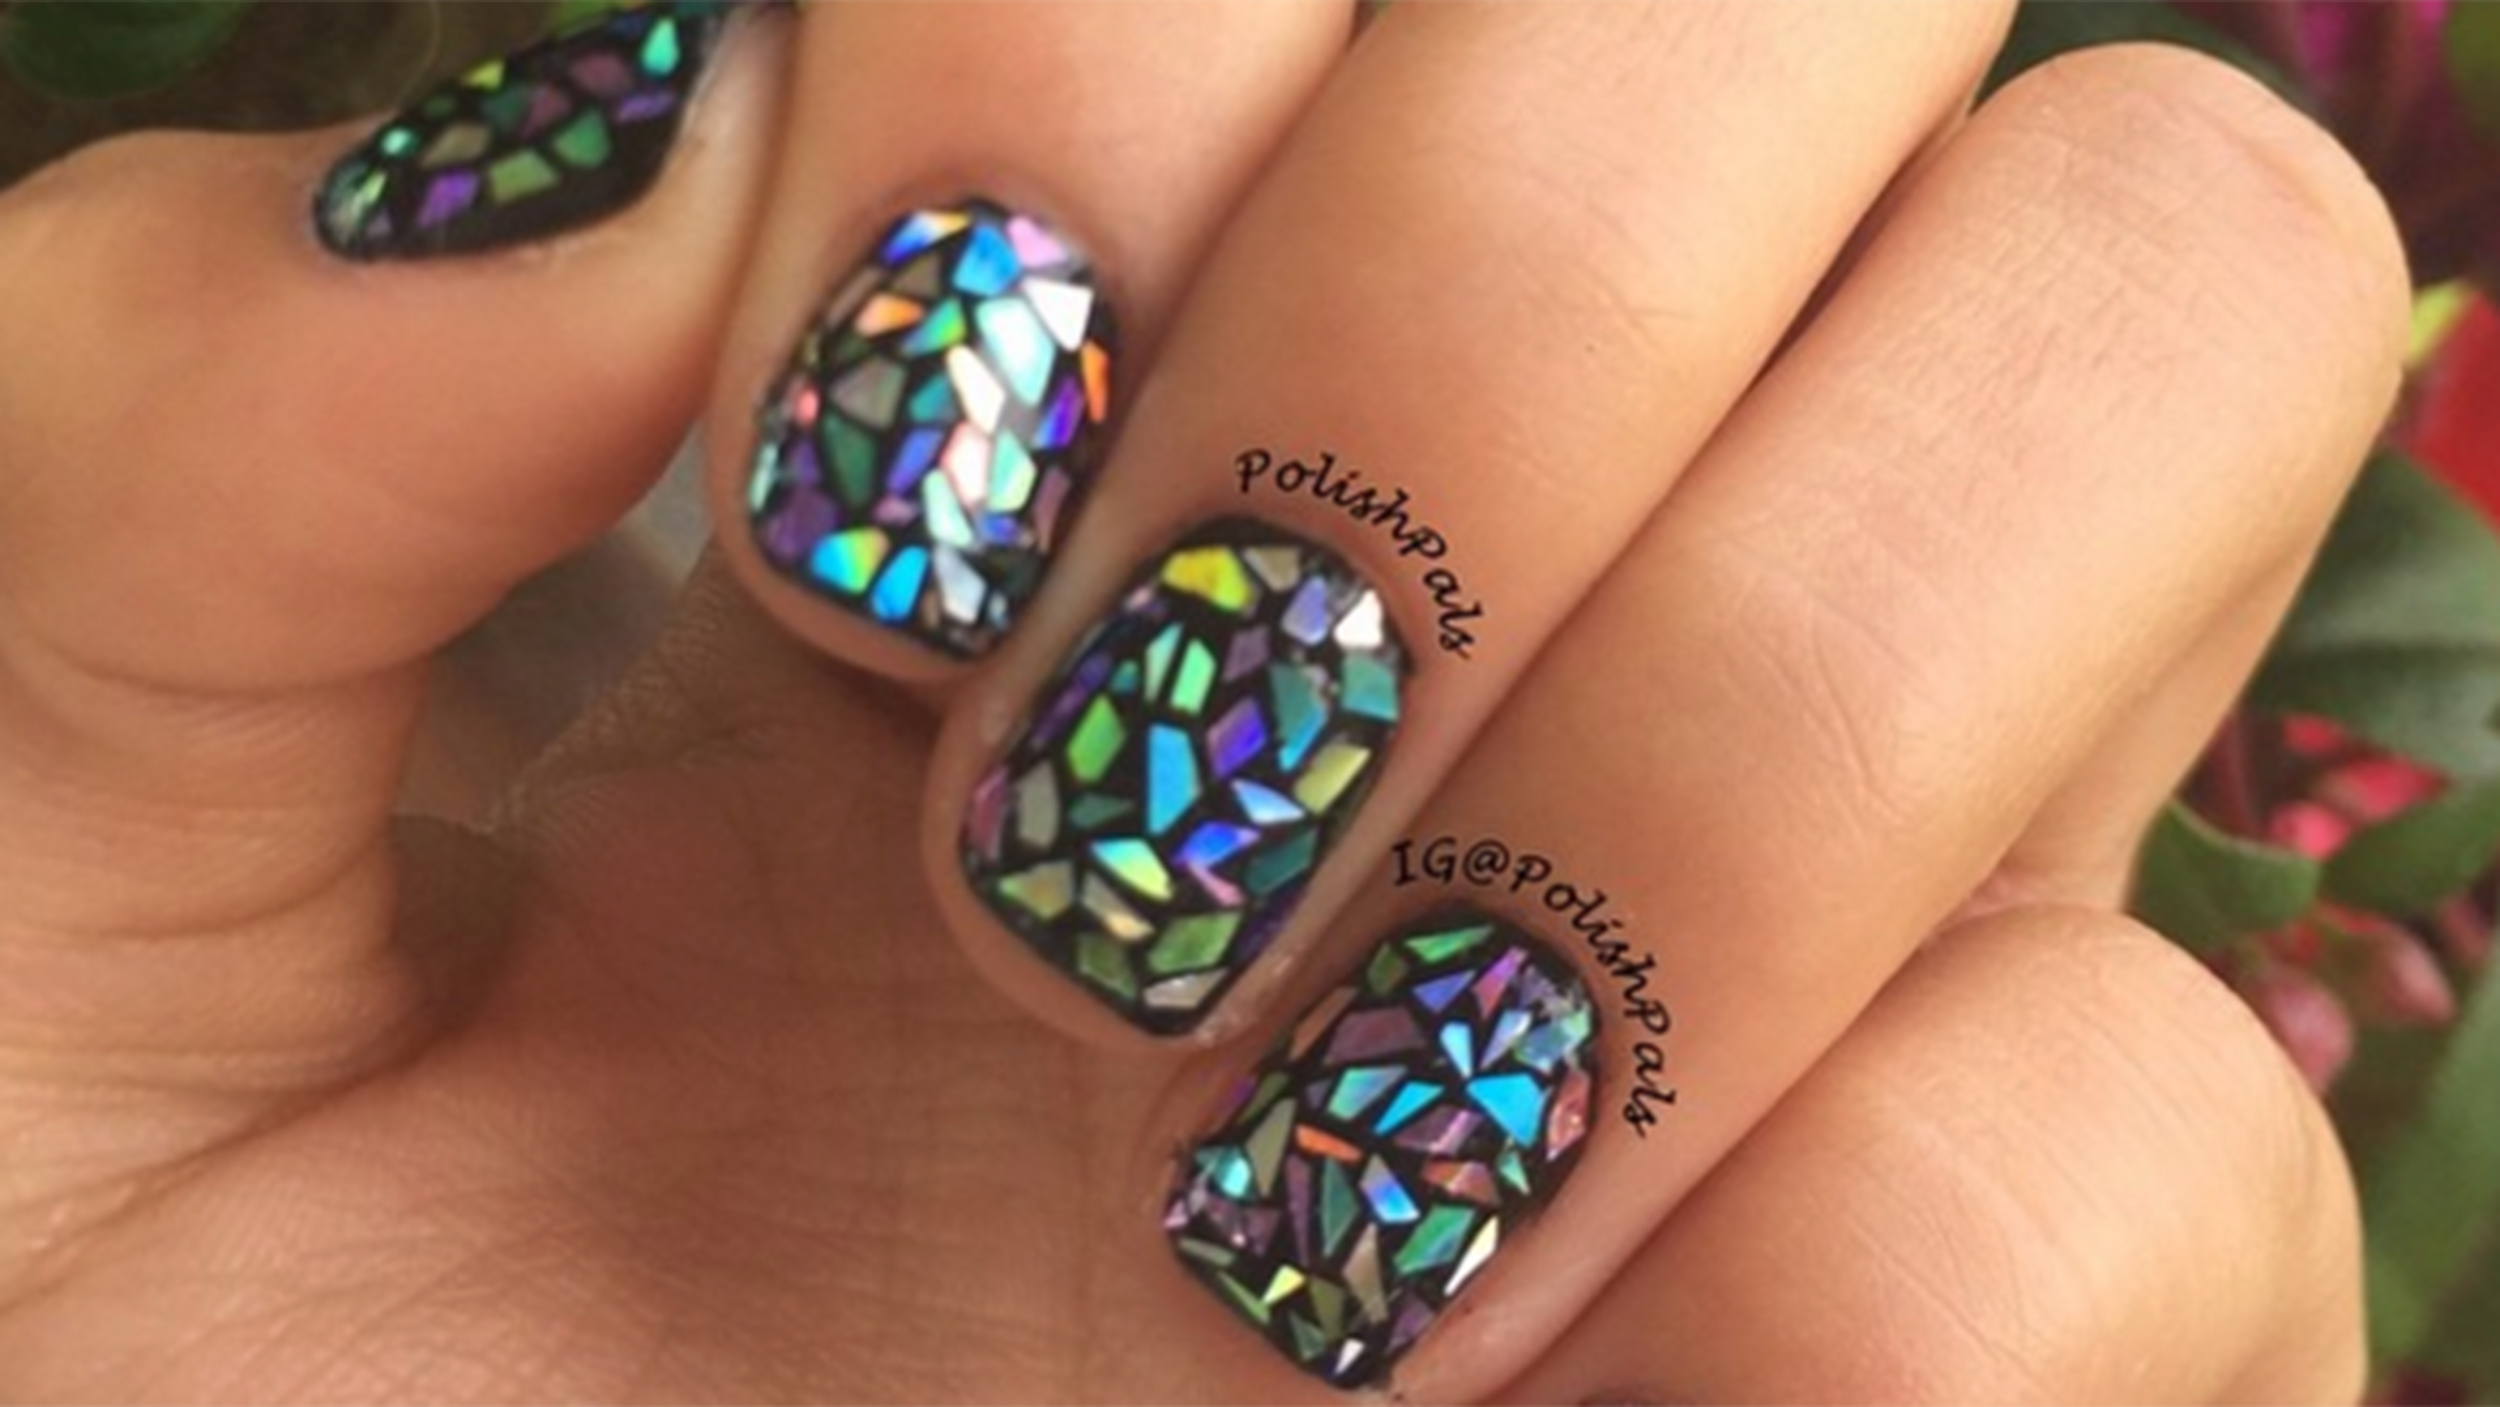 Shattered Glass Nail Art Is The Hottest Trend On The